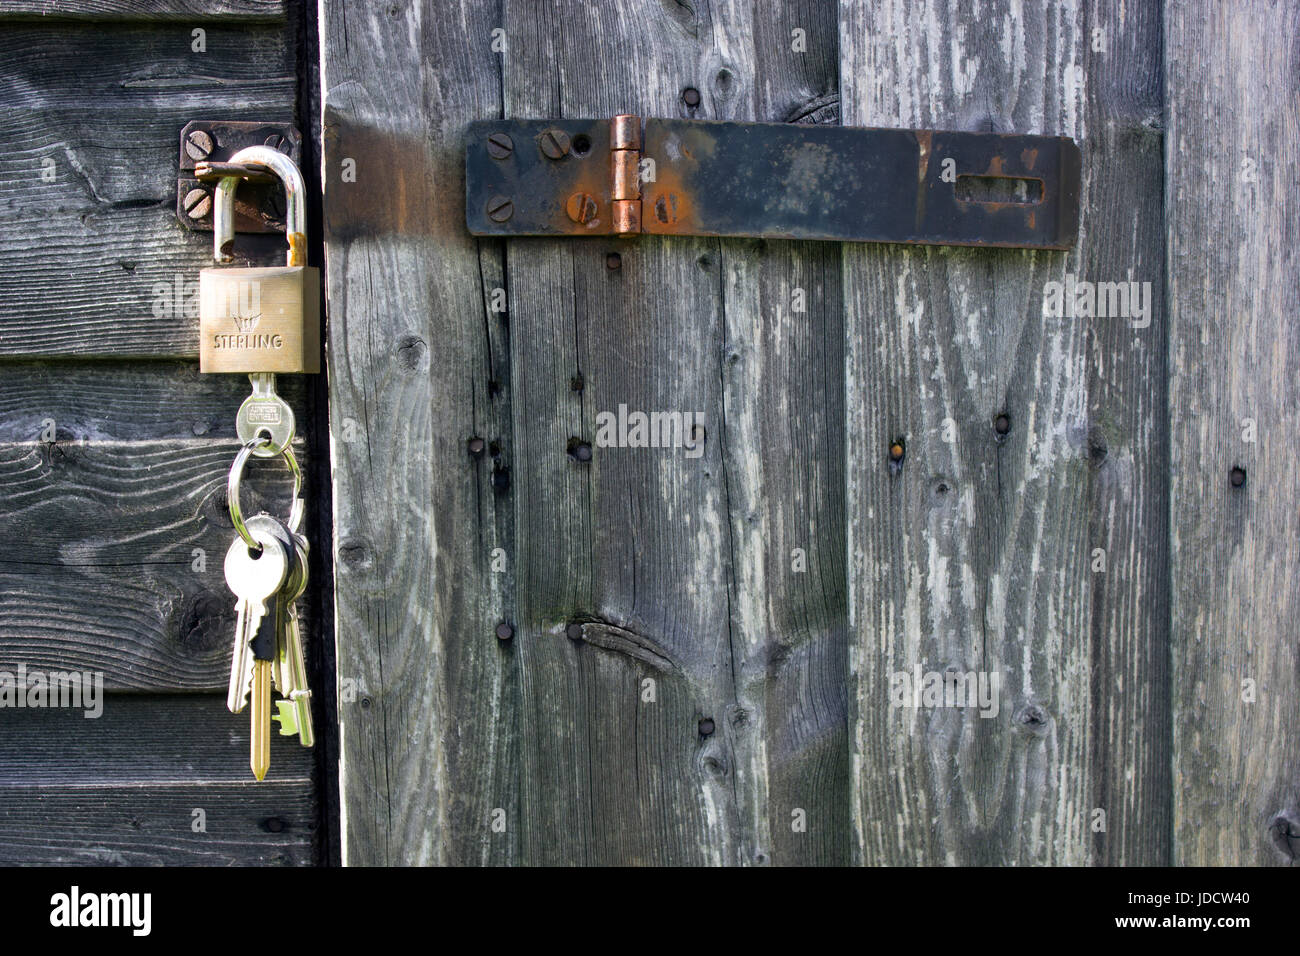 Black hasp and staple or clasp with padlock and keys. The garden shed door is unlocked and the keys are still in the lock. The staple clasp is open & Black hasp and staple or clasp with padlock and keys. The garden ...